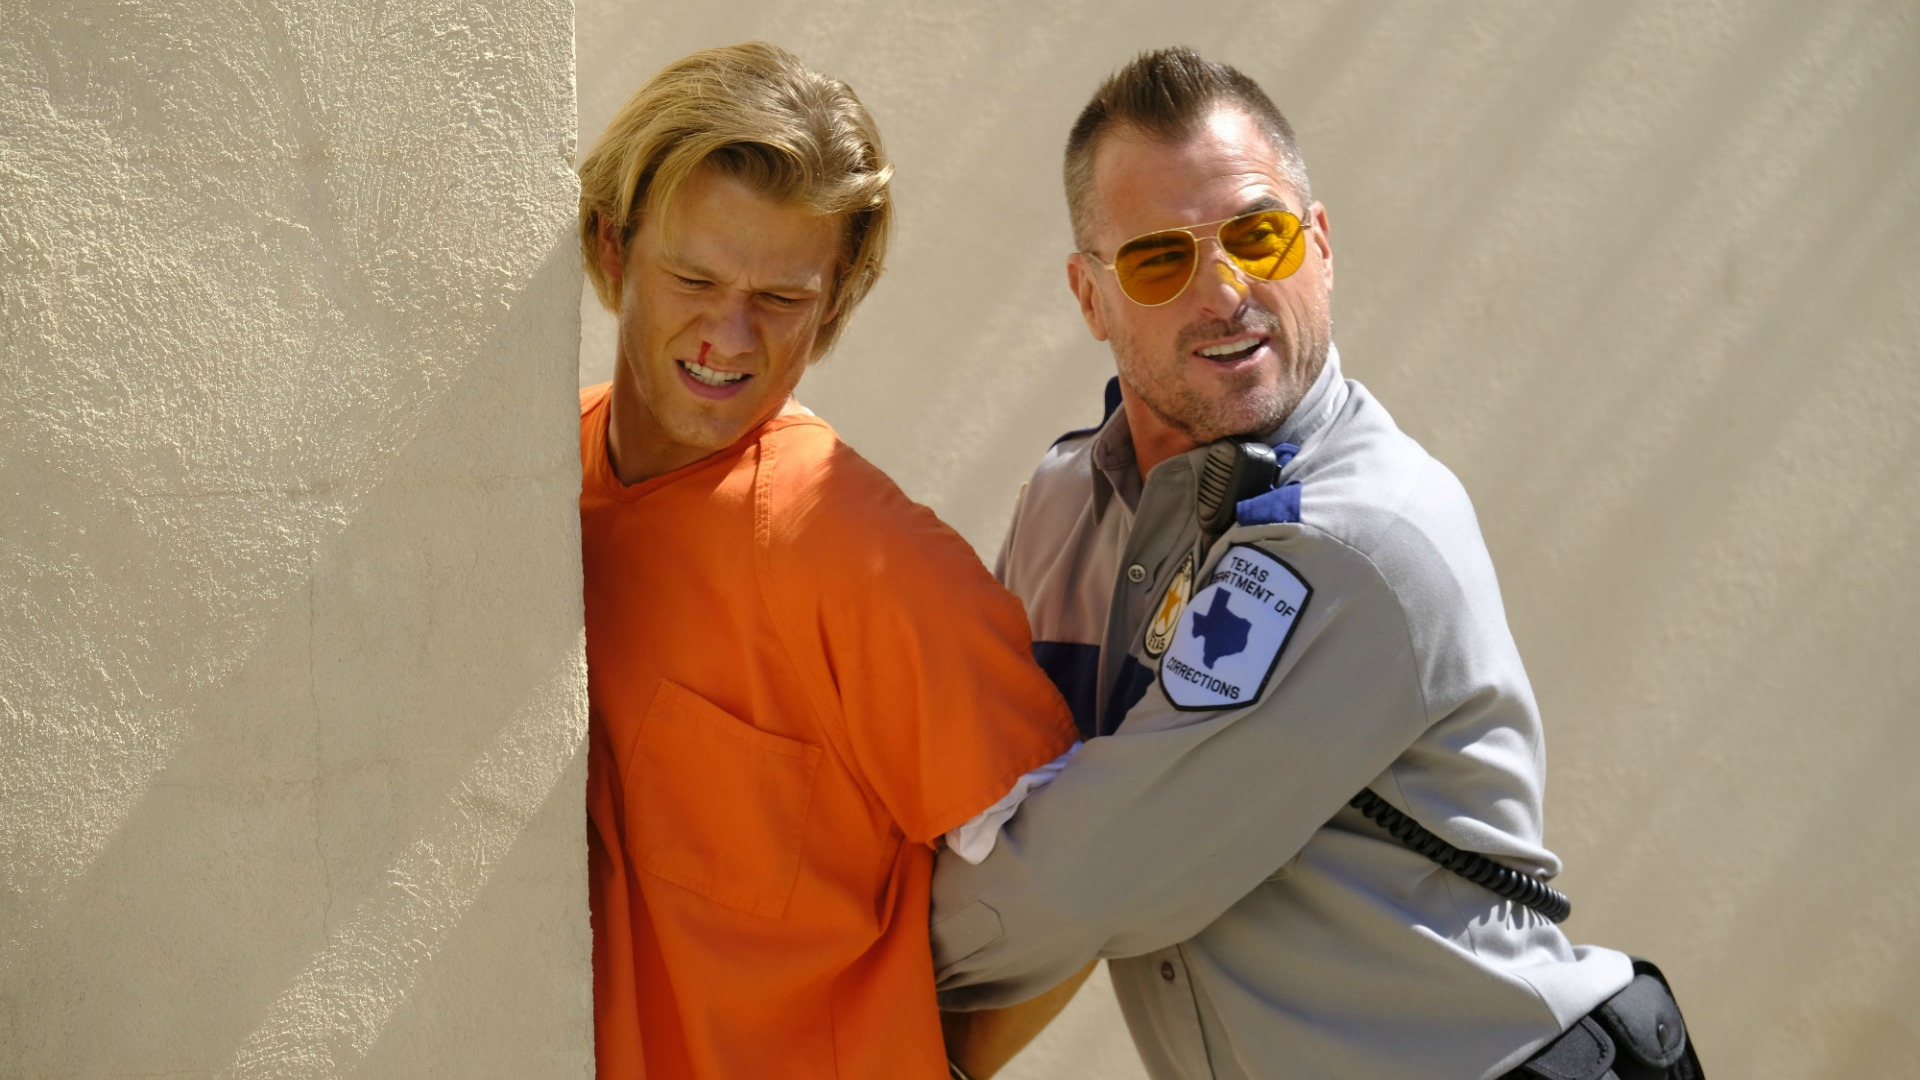 MacGyver gets roughed up by Jack.